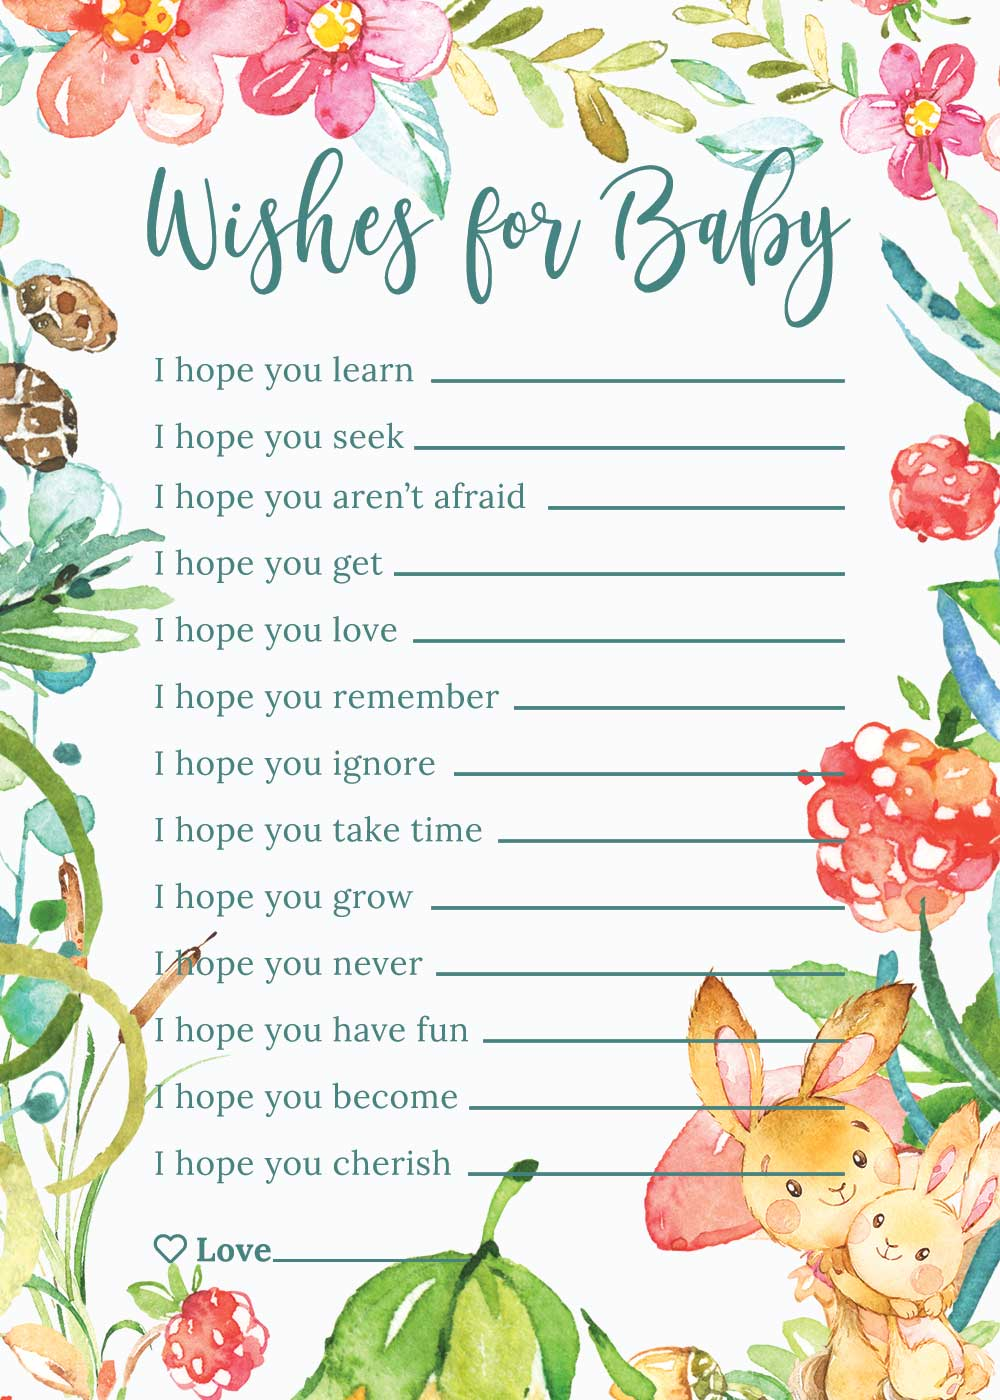 Baby Shower Wishes for baby card - Raspberry theme